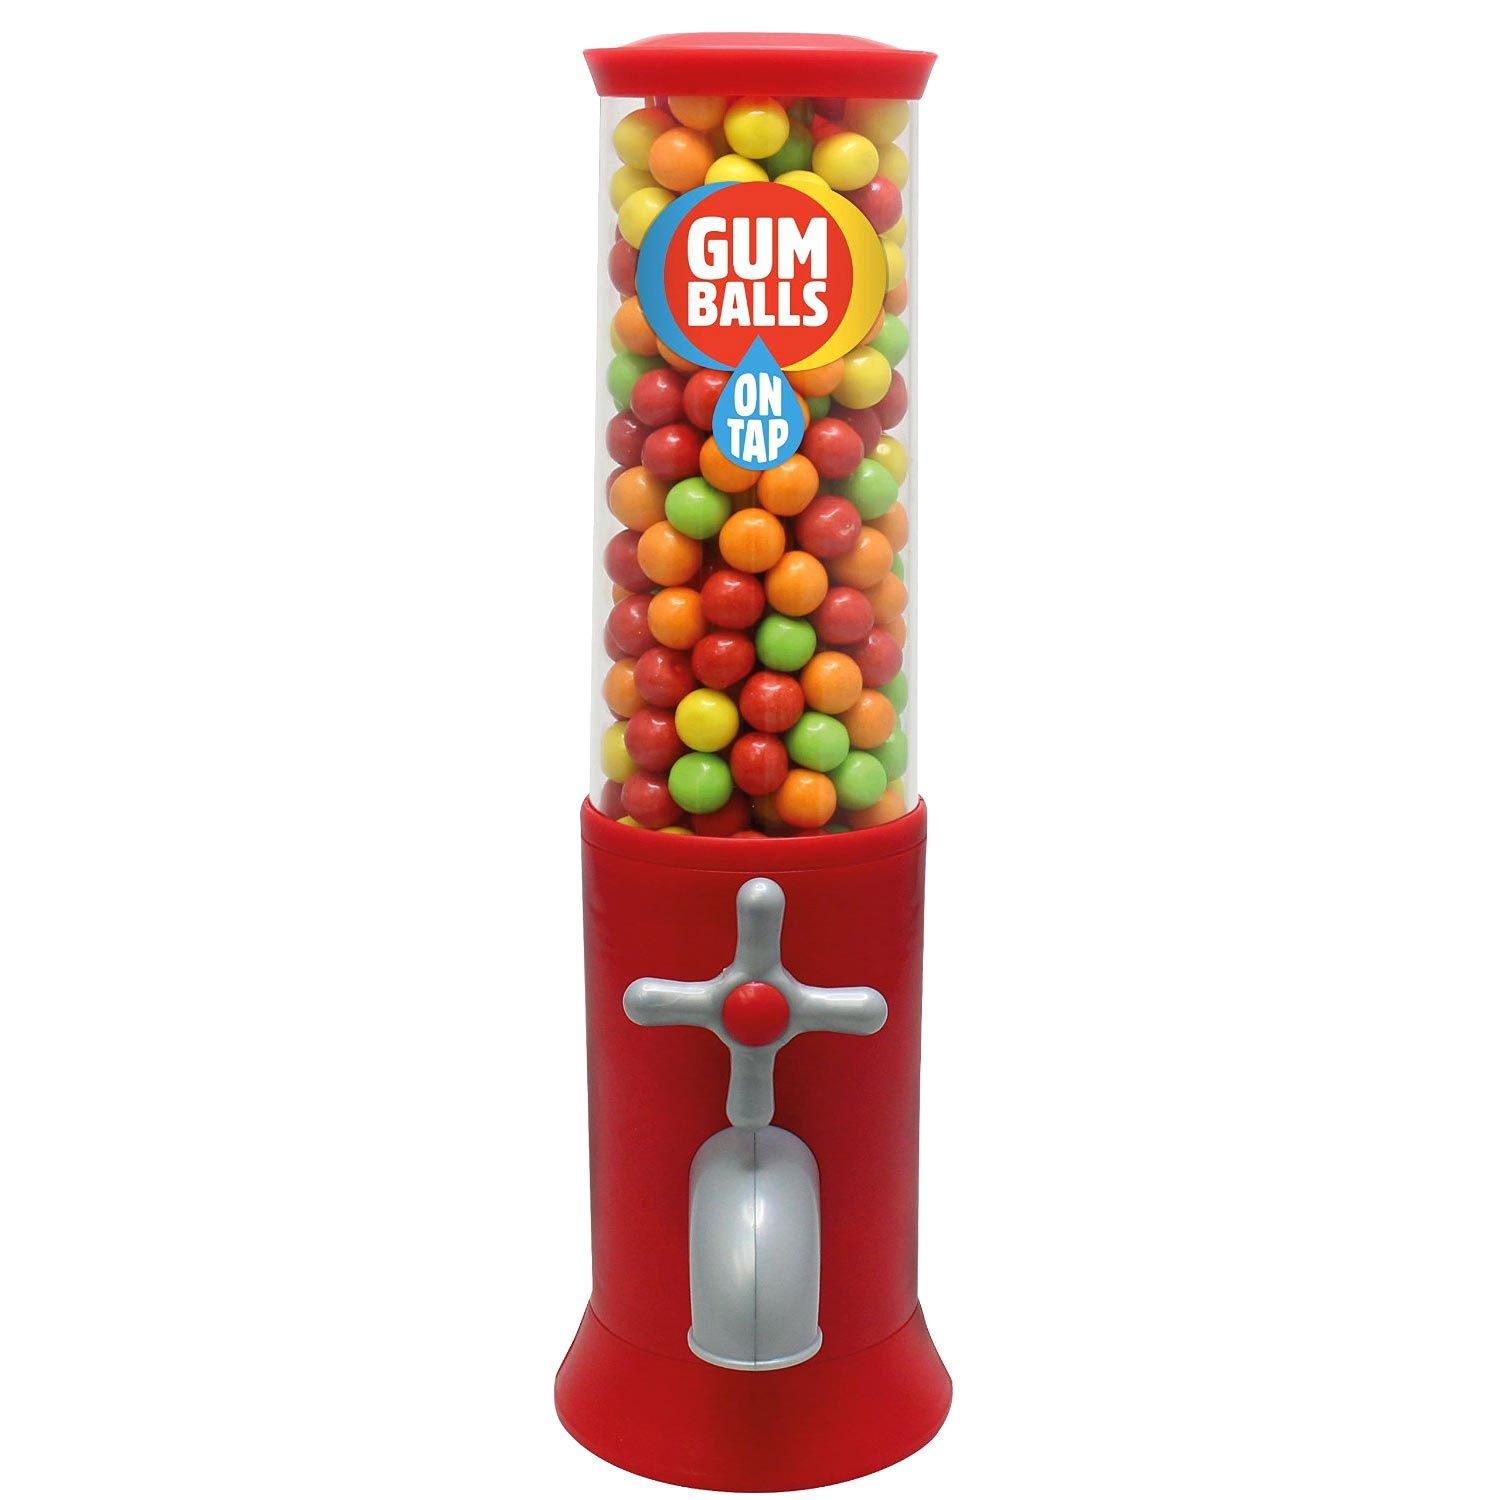 Gumball Machine with Gumballs